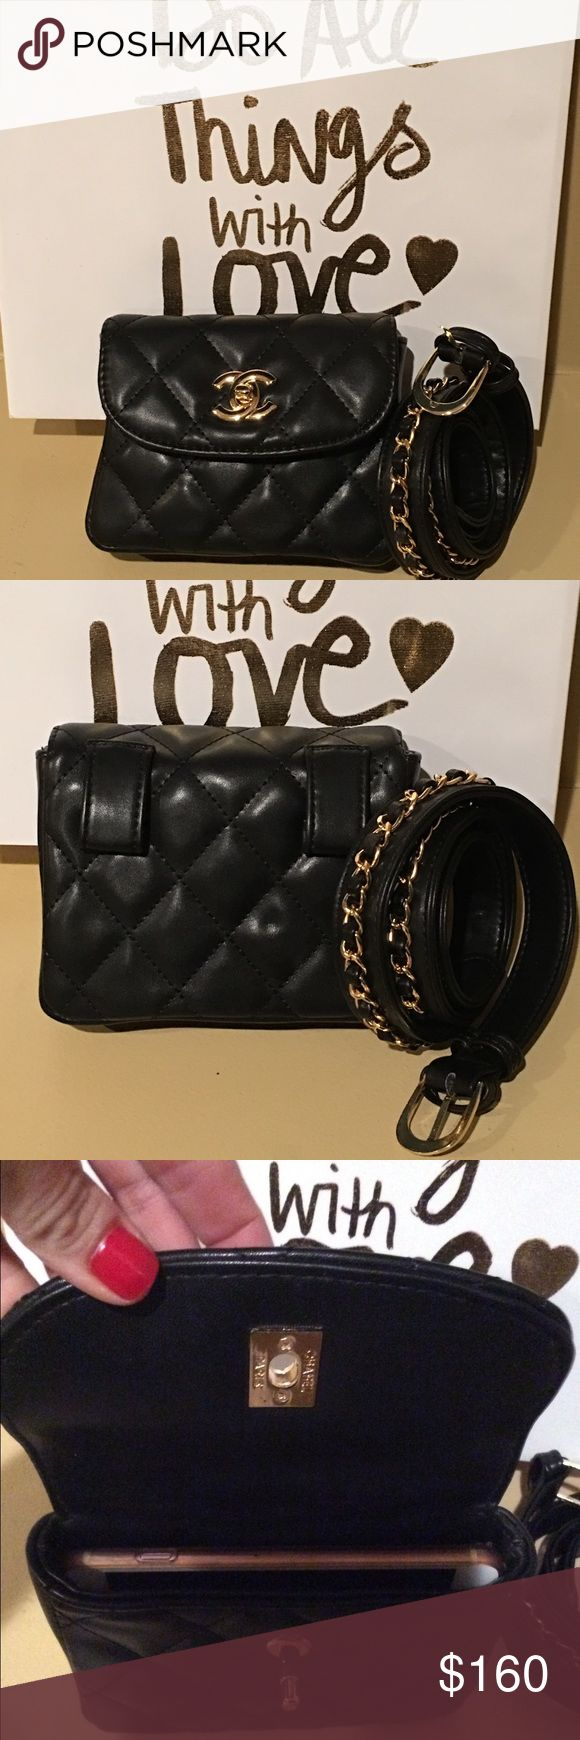 """Chanel Waist Bag / Belt Bag New- quilted leather belt bag, waist bag, fanny pack.  The belt measures 39"""" and has a gold chain attached to the exterior. The belt is removable and you can use your own belt if you need a longer one.     Last pic shows my iPhone 6 plus in it. It fits tight but fits! PRICE REFLECTS. NO OFFERS  CHANEL Bags"""